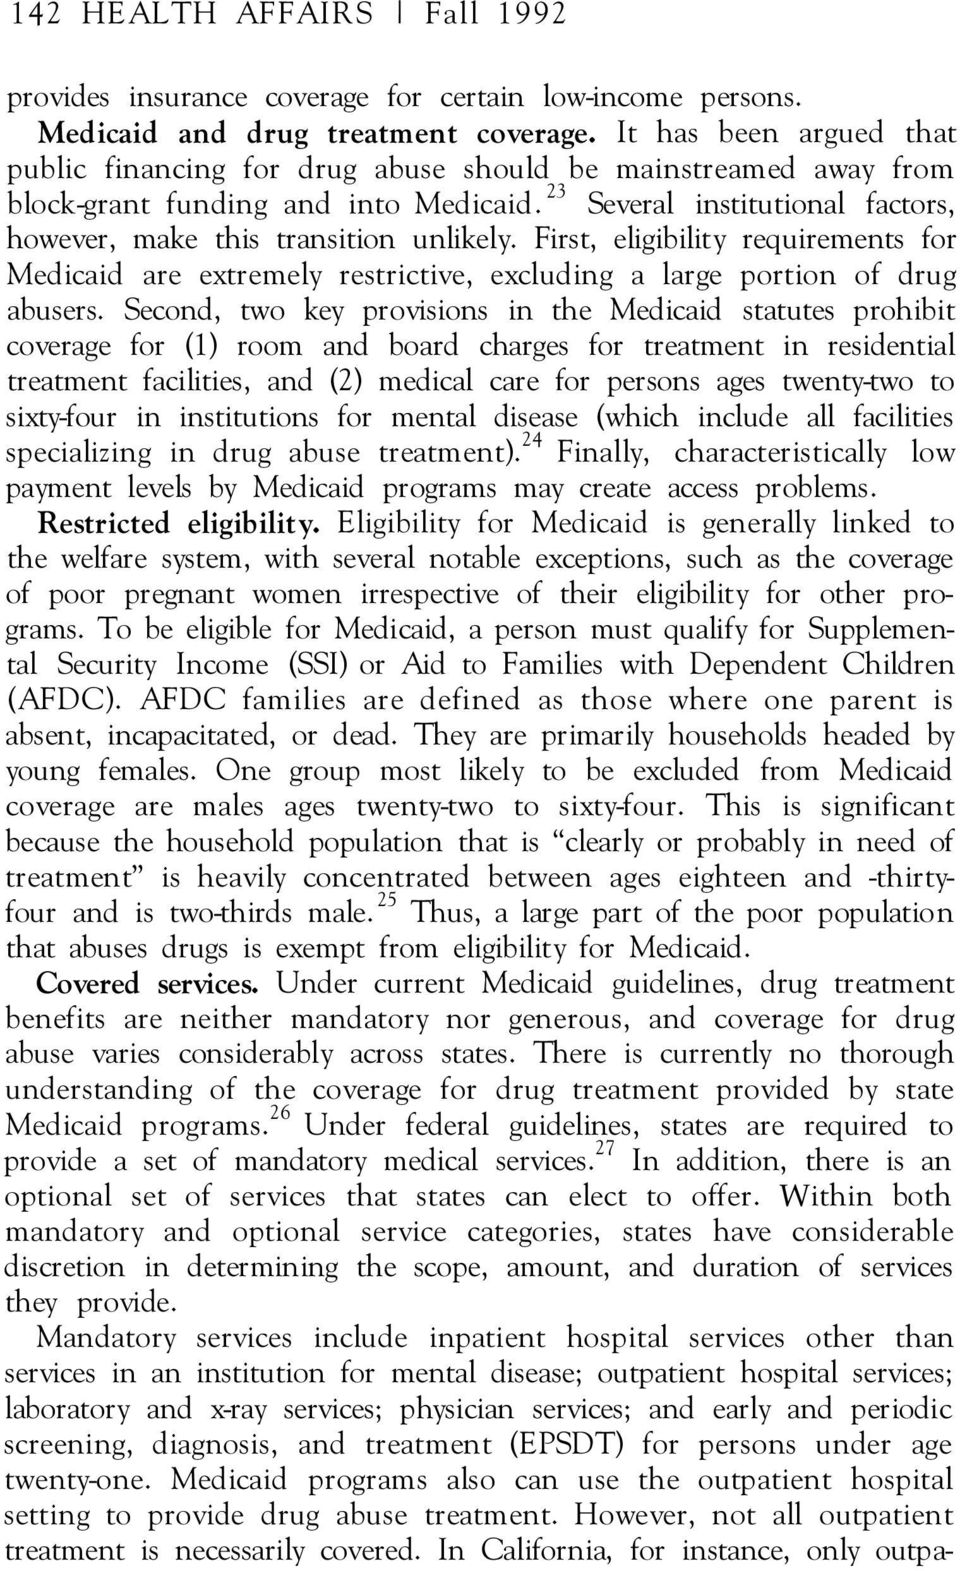 23 Several institutional factors, however, make this transition unlikely. First, eligibility requirements for Medicaid are extremely restrictive, excluding a large portion of drug abusers.